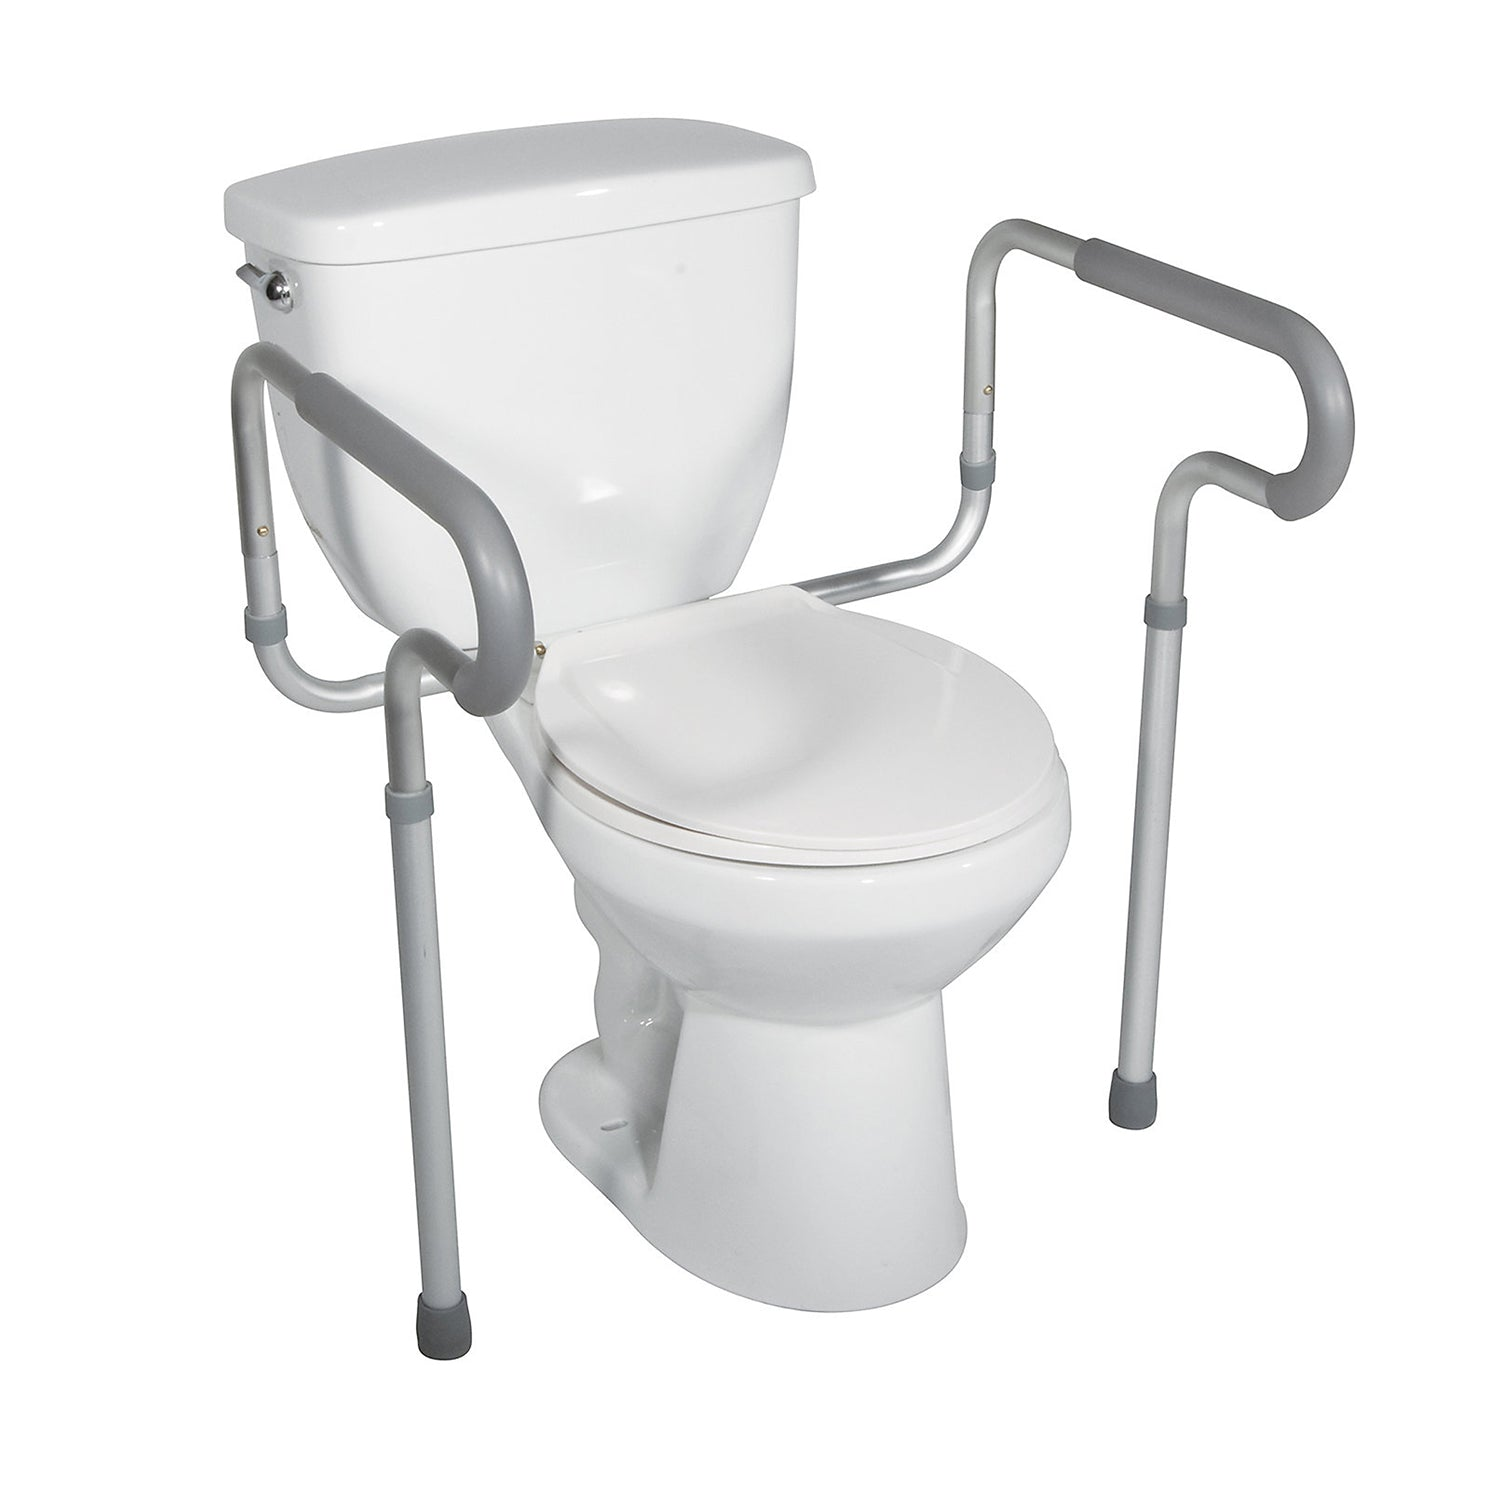 Drive Toilet Safety Frame with Padded Armrest